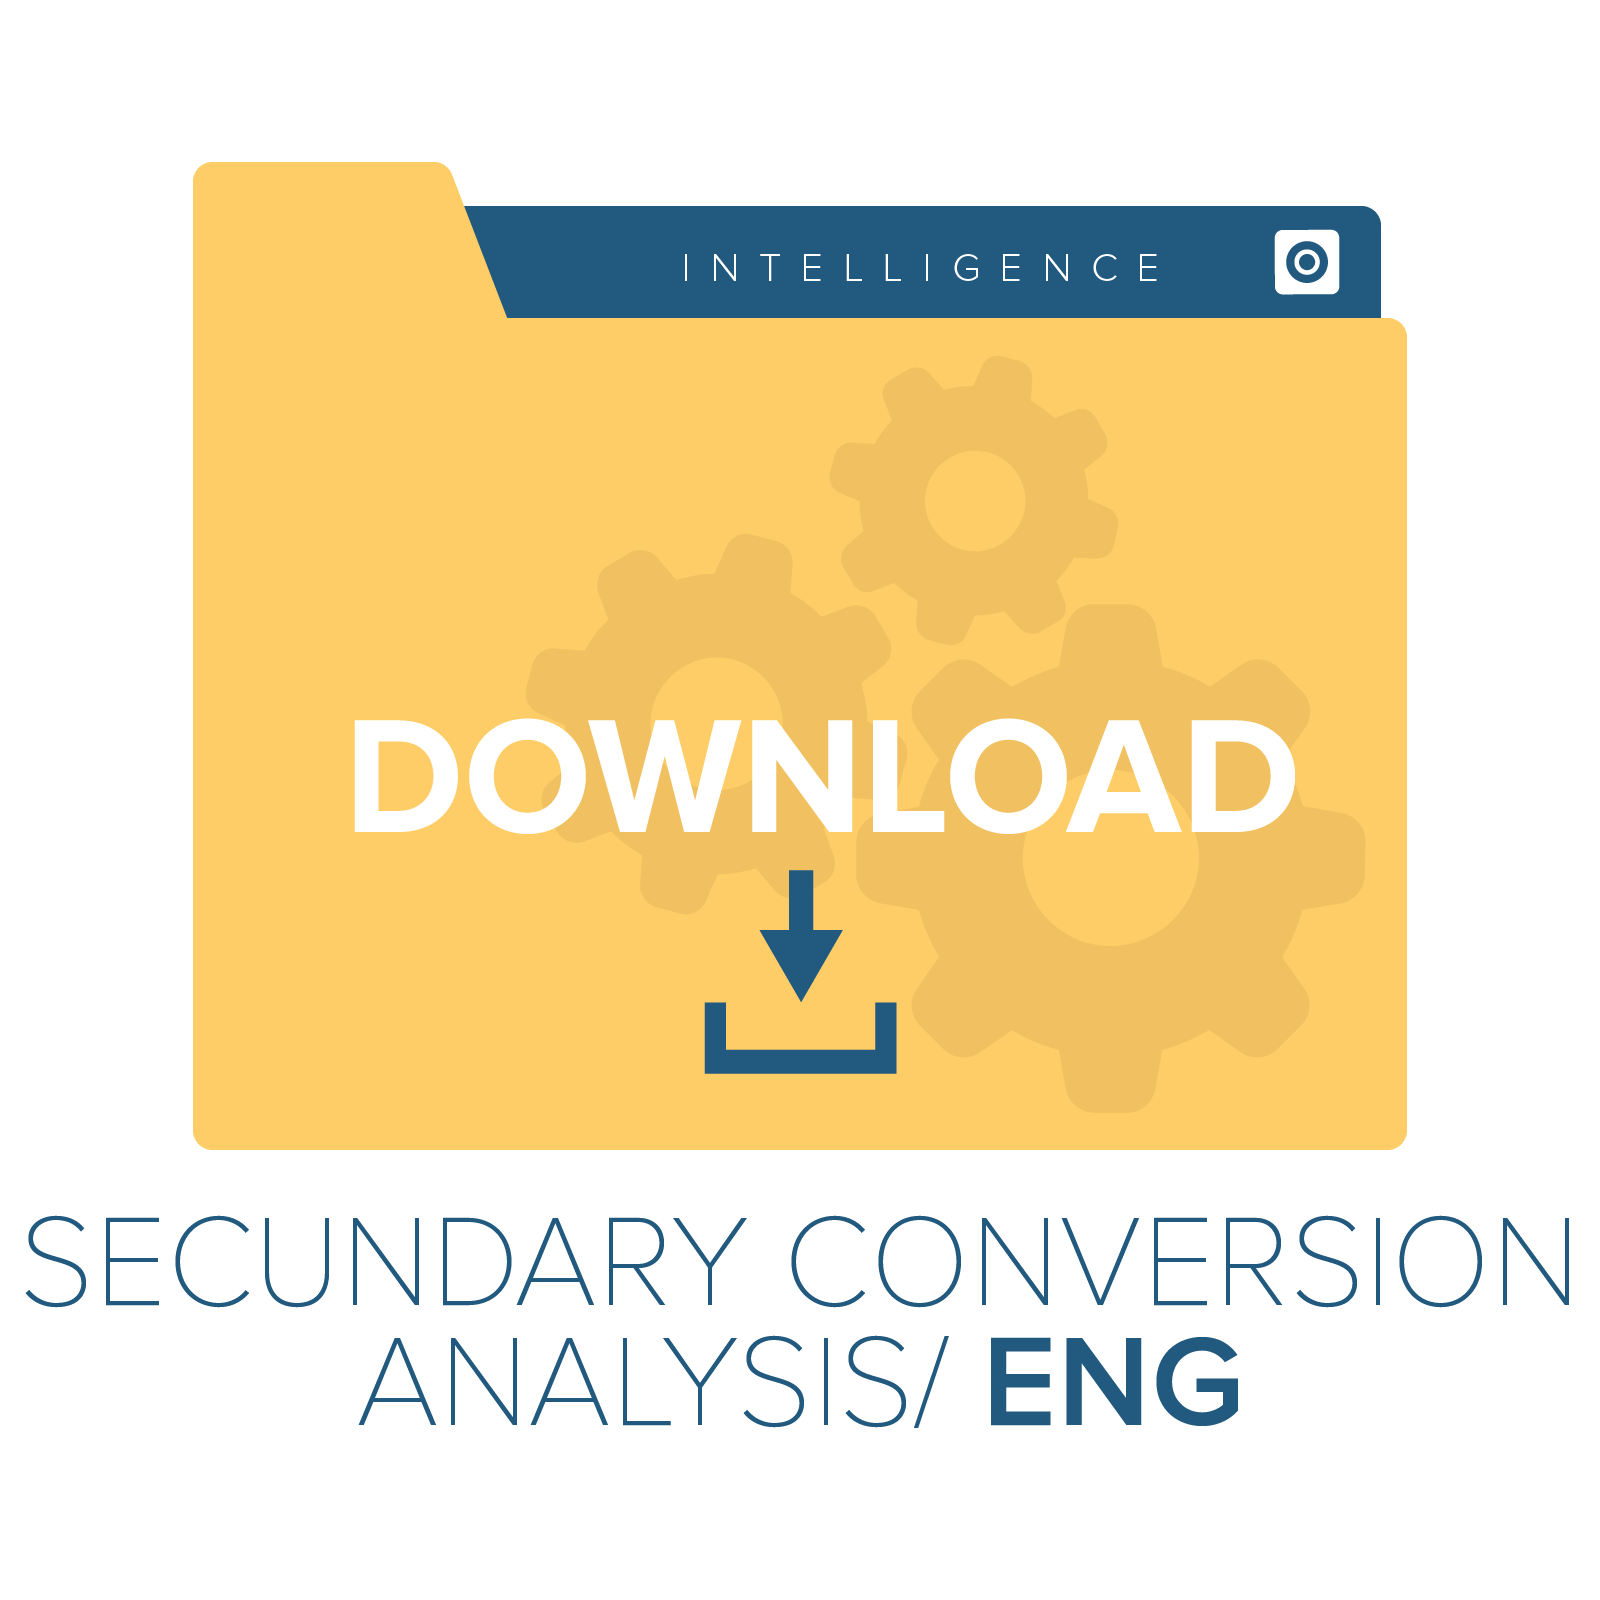 secundary-conversion-analysis-eng.png